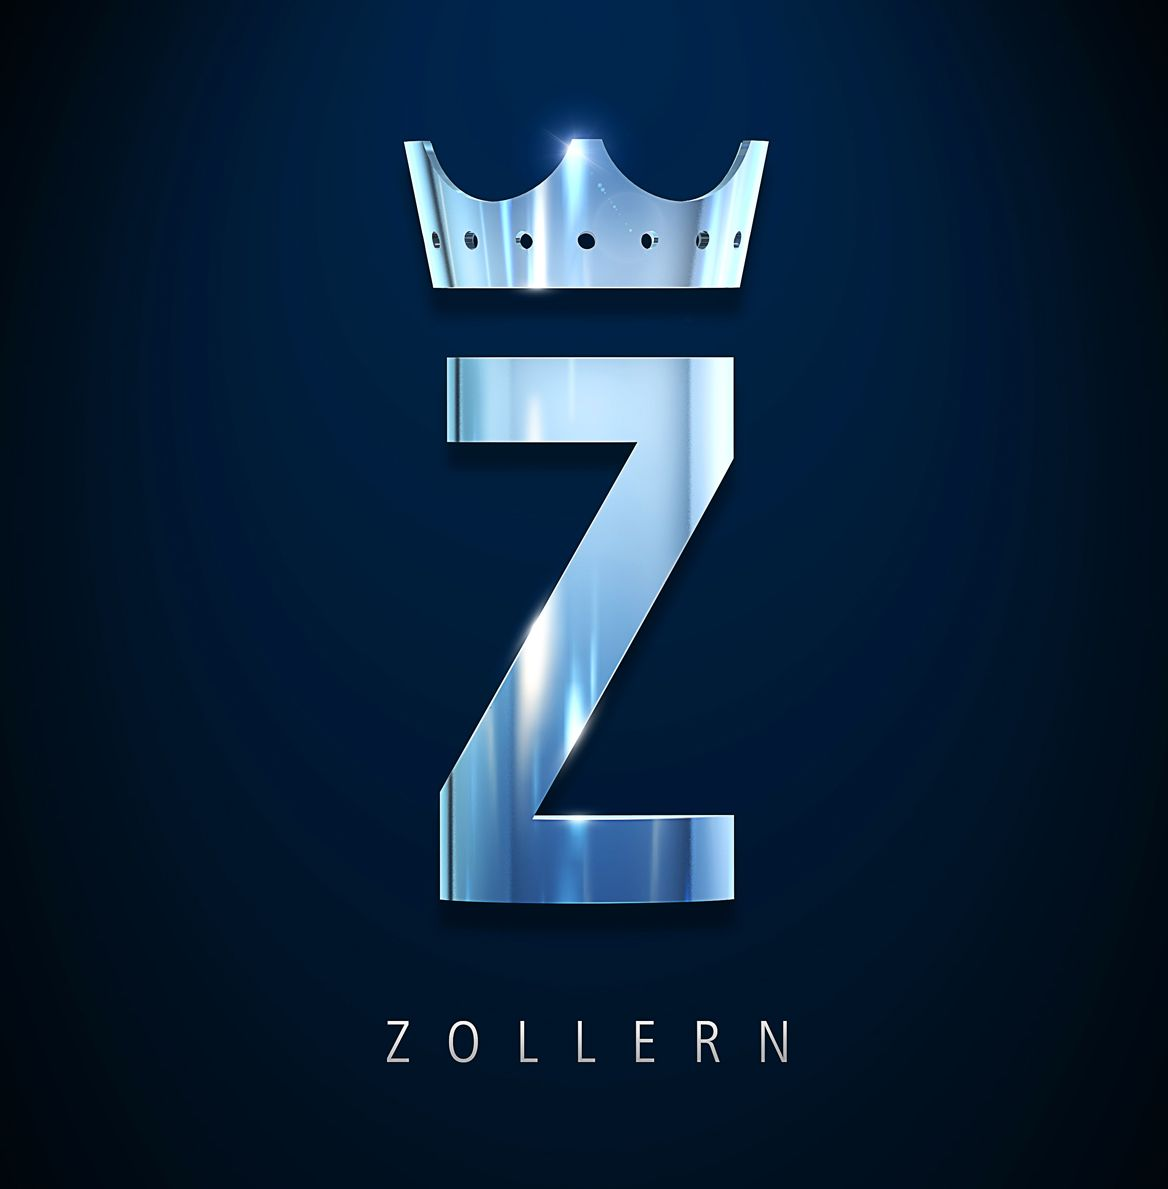 Referenz Zollern Corporate Identity Key Visual 2